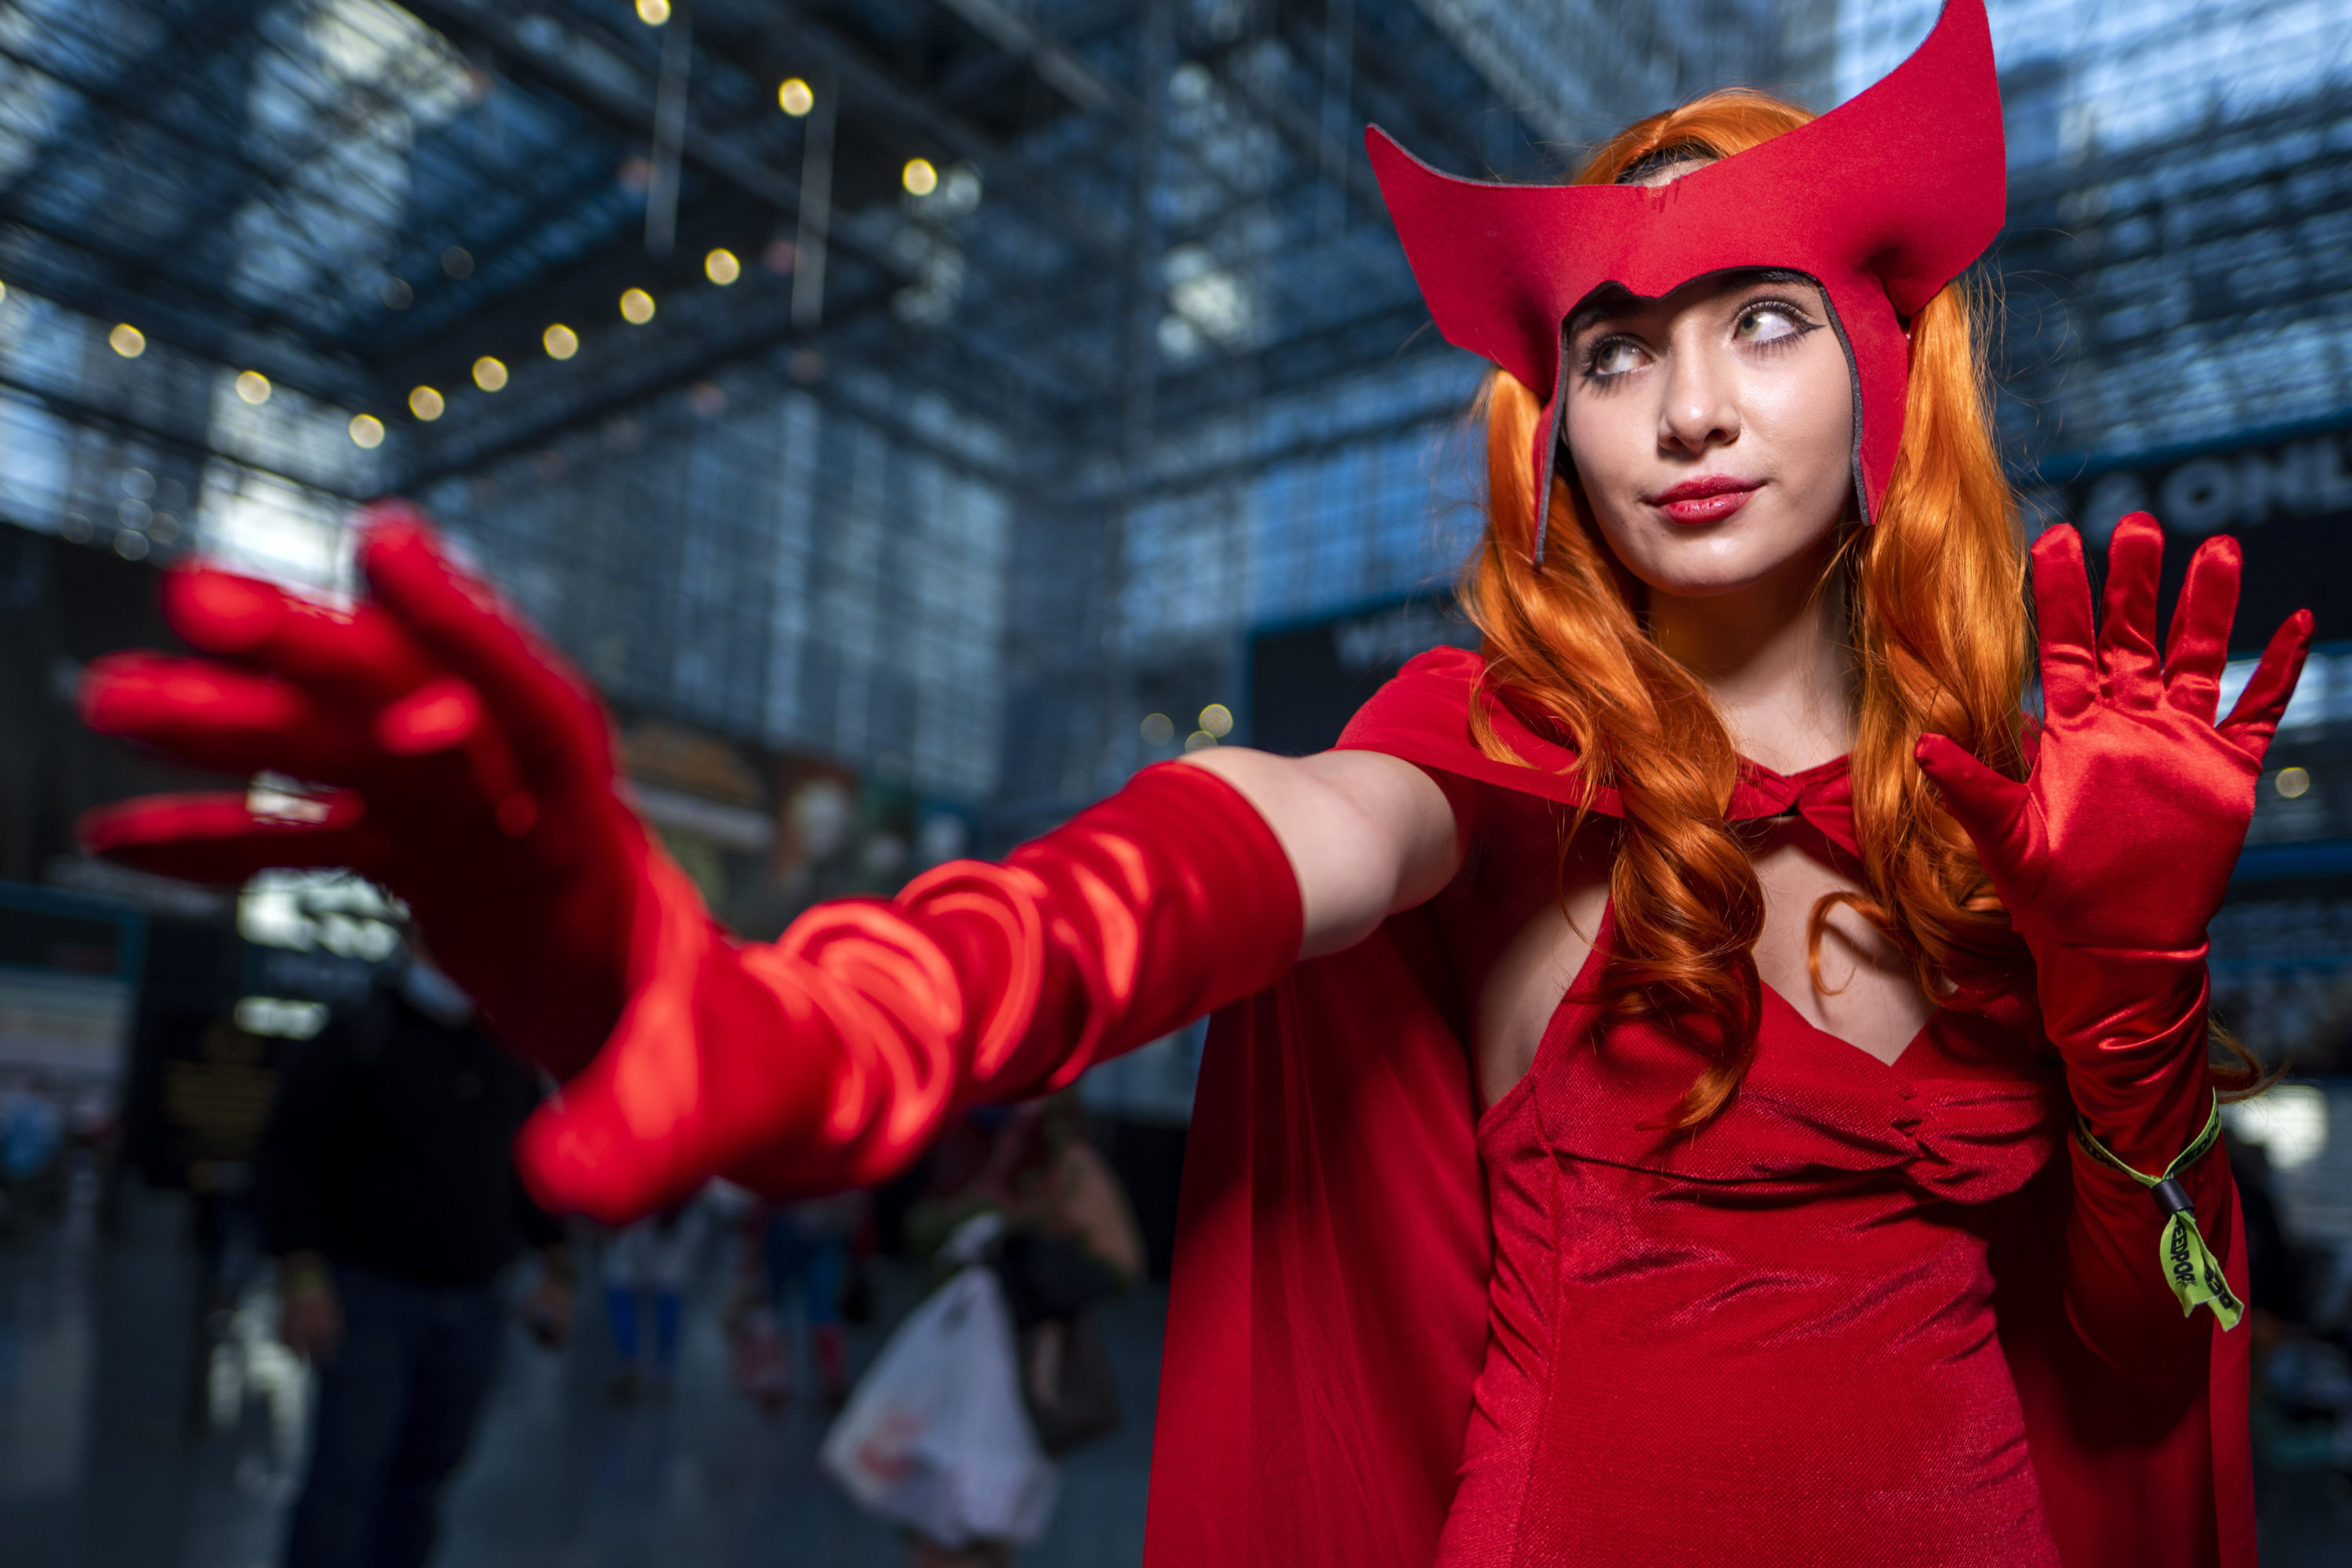 An attendee dressed as Wanda Maximoff poses during New York Comic Con on Thursday, Oct. 7, 2021, in New York. (Charles Sykes/Invision/AP)